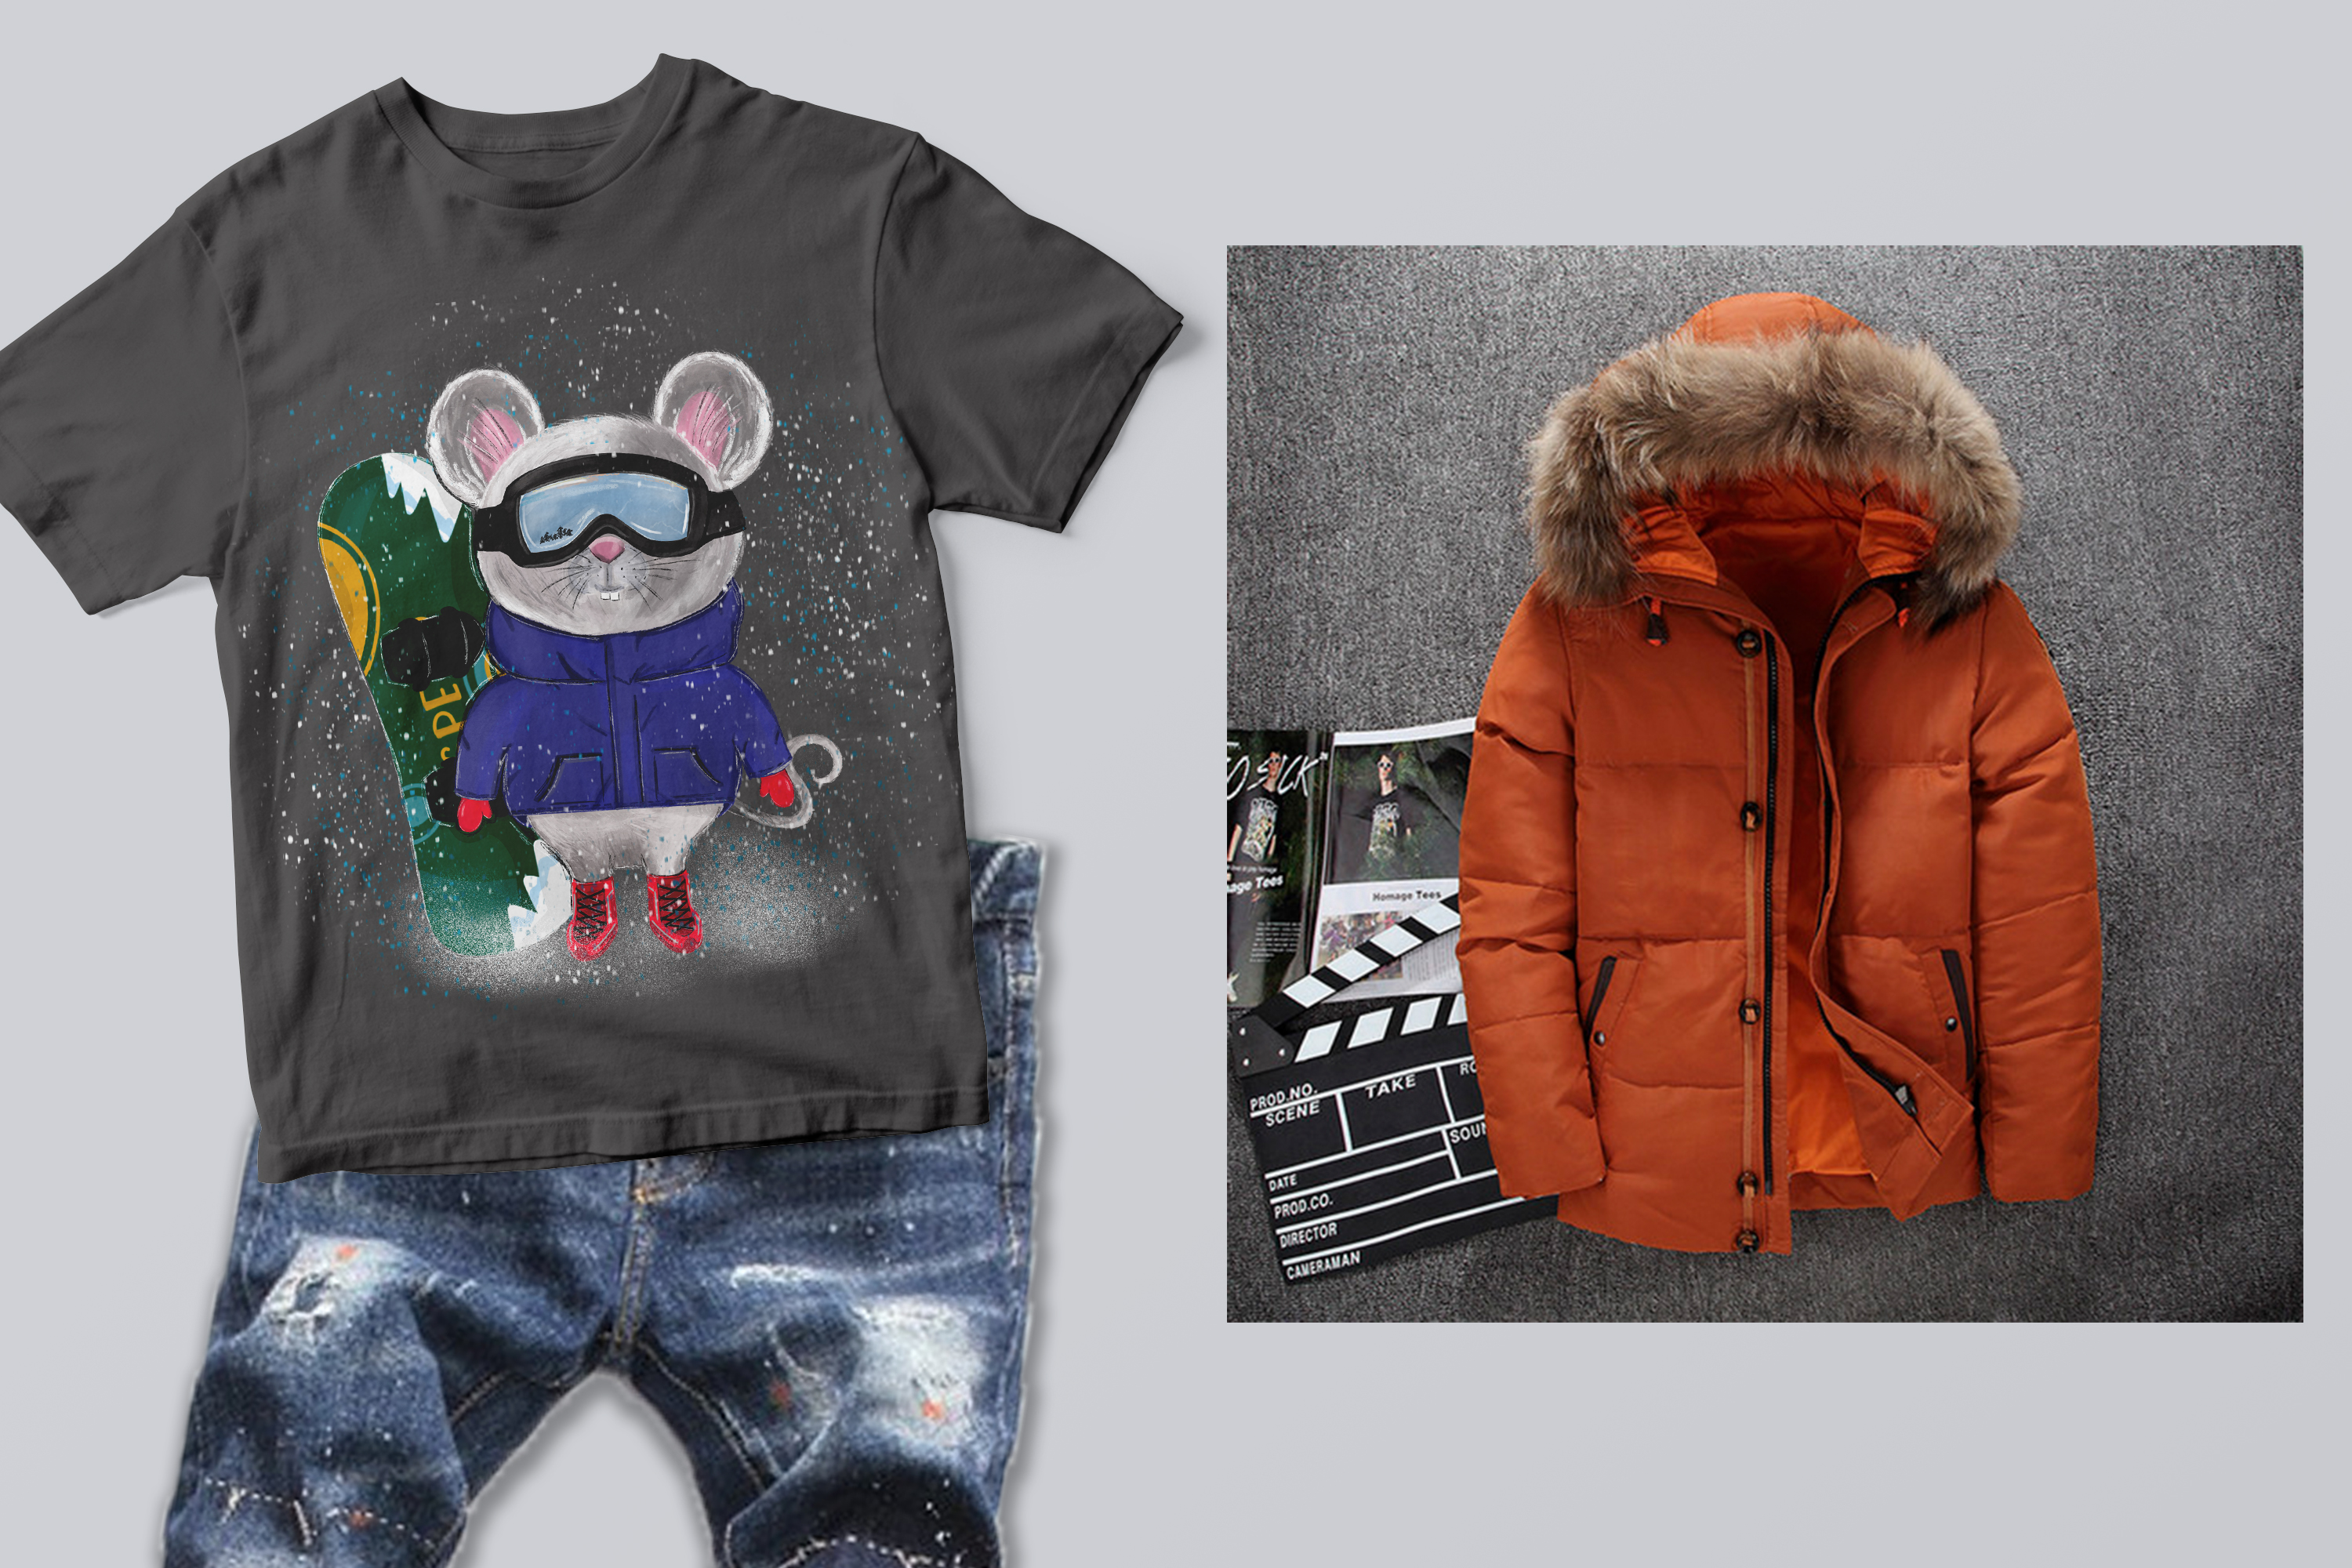 Rat boy and rat girl snowboarder clip art example image 3